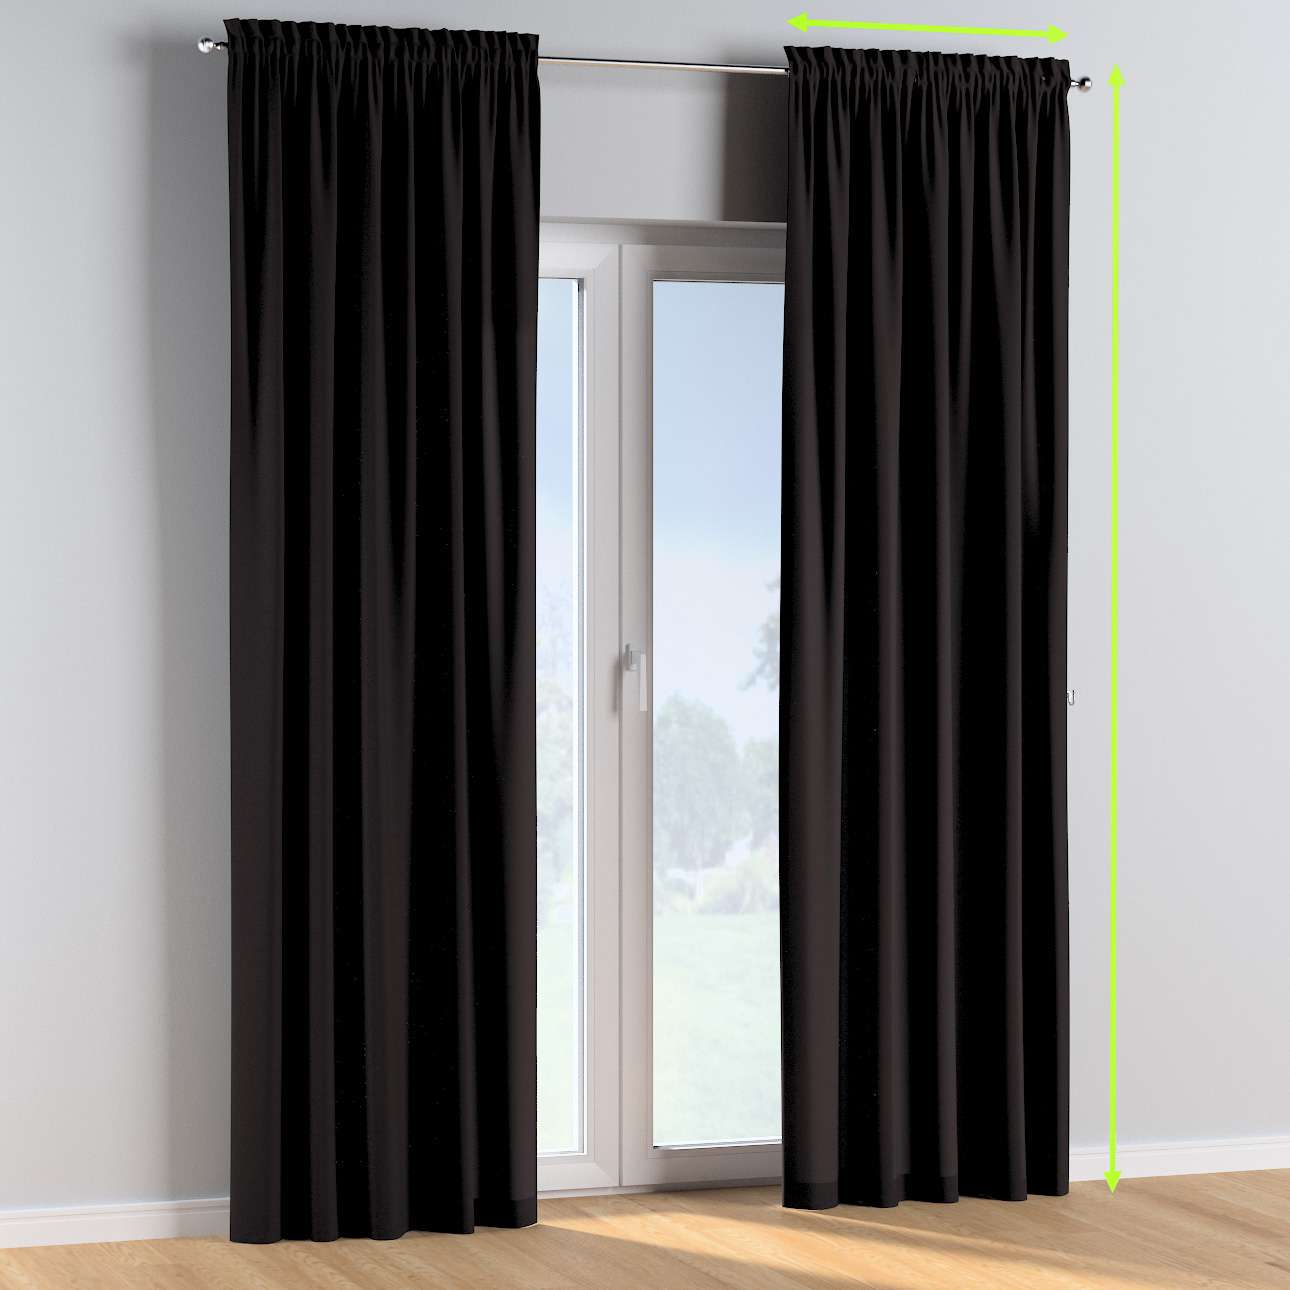 Slot and frill curtains in collection Cotton Story, fabric: 702-09